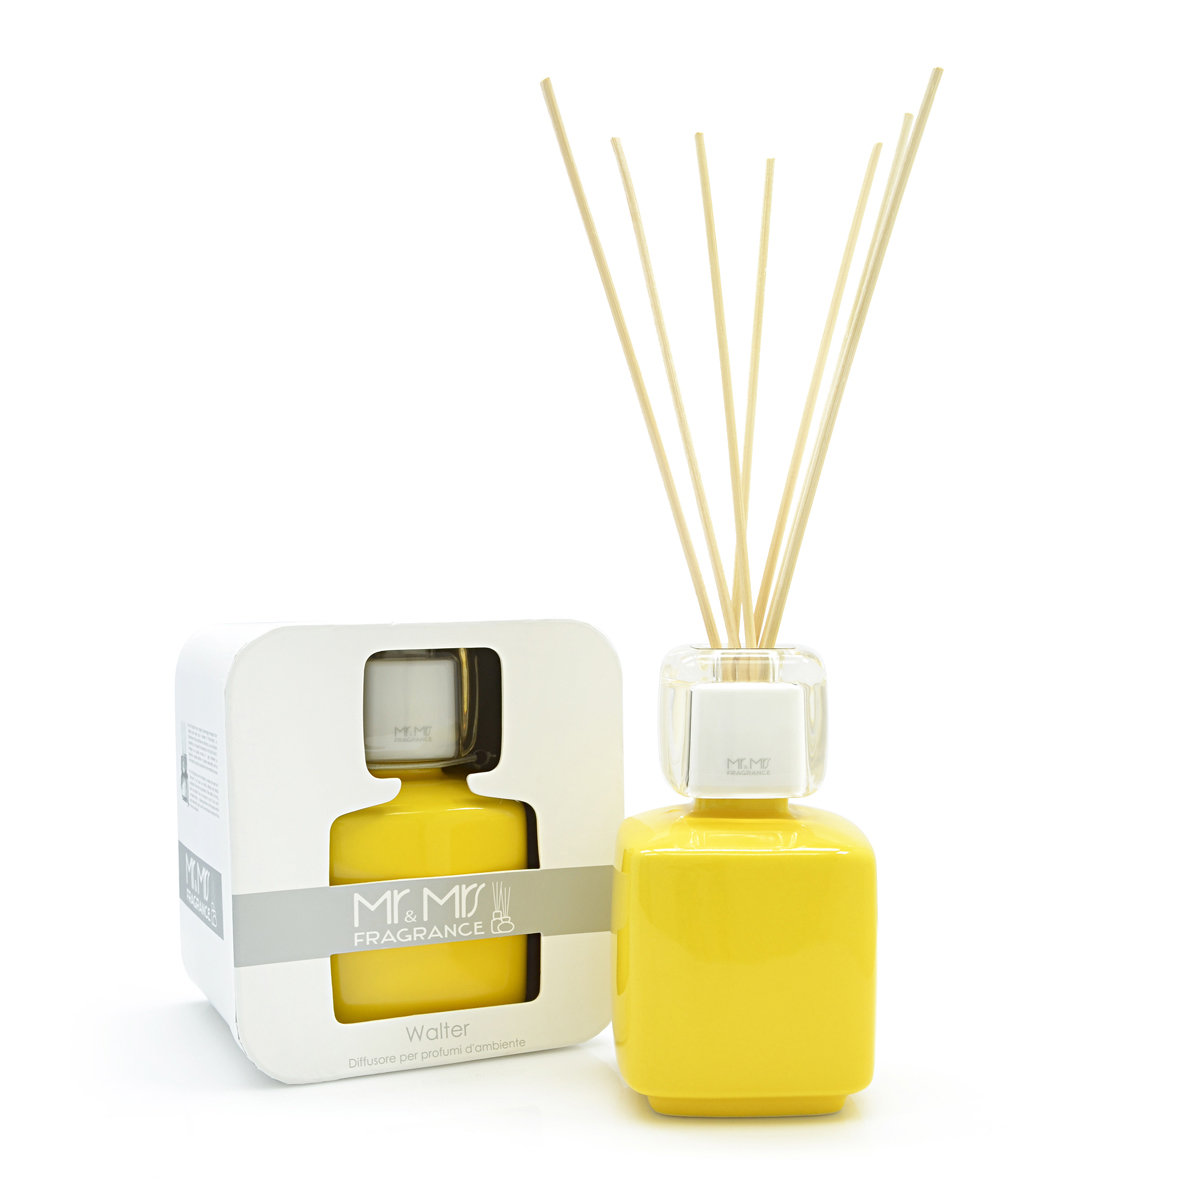 WALTER Ceramic Fragrance Diffuser - Yellow